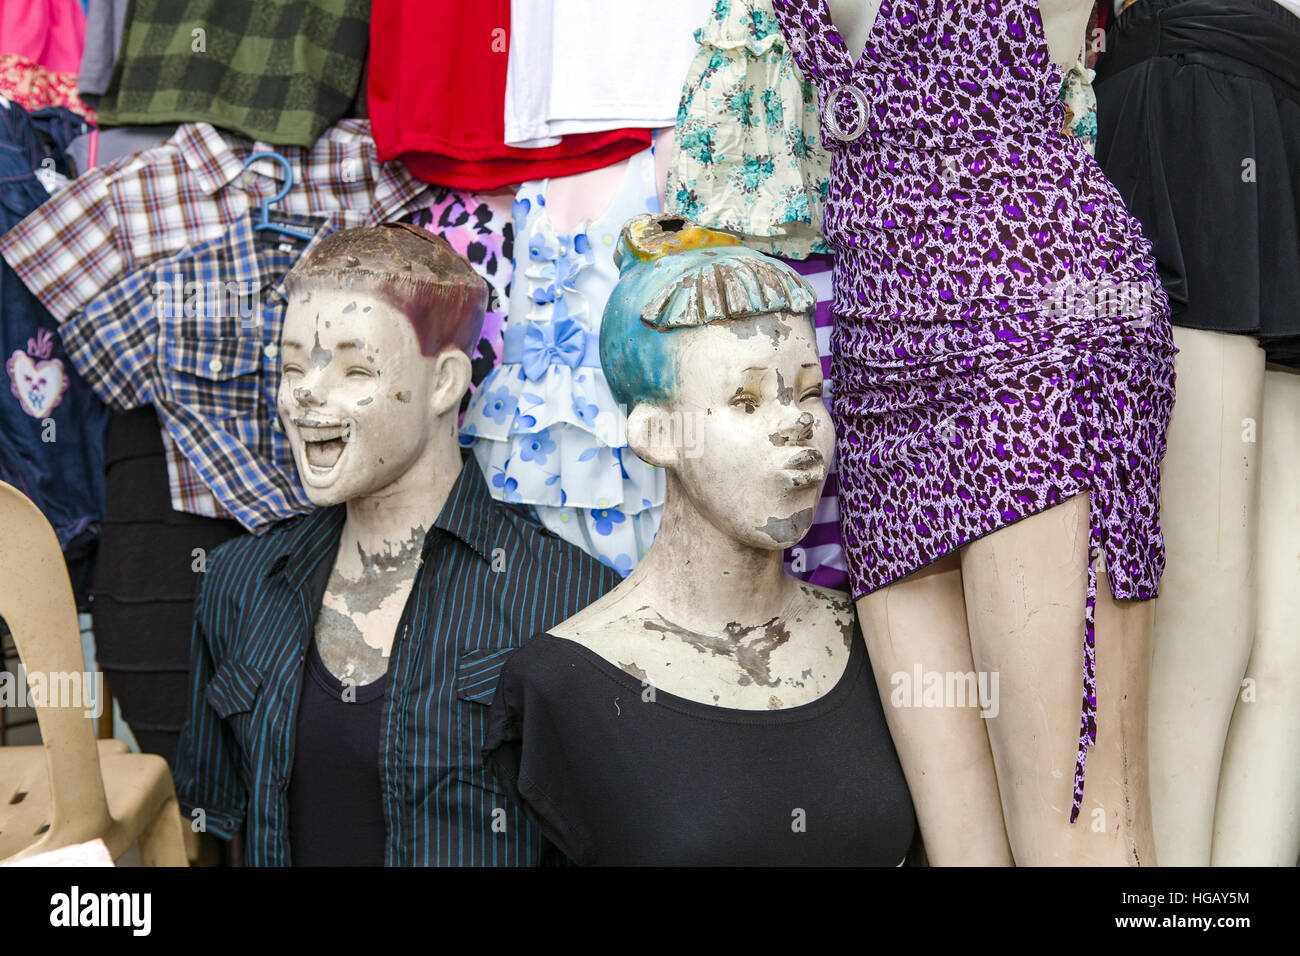 12567f6c3 Mannequins with funny expressions outside a clothing store. - Stock Image